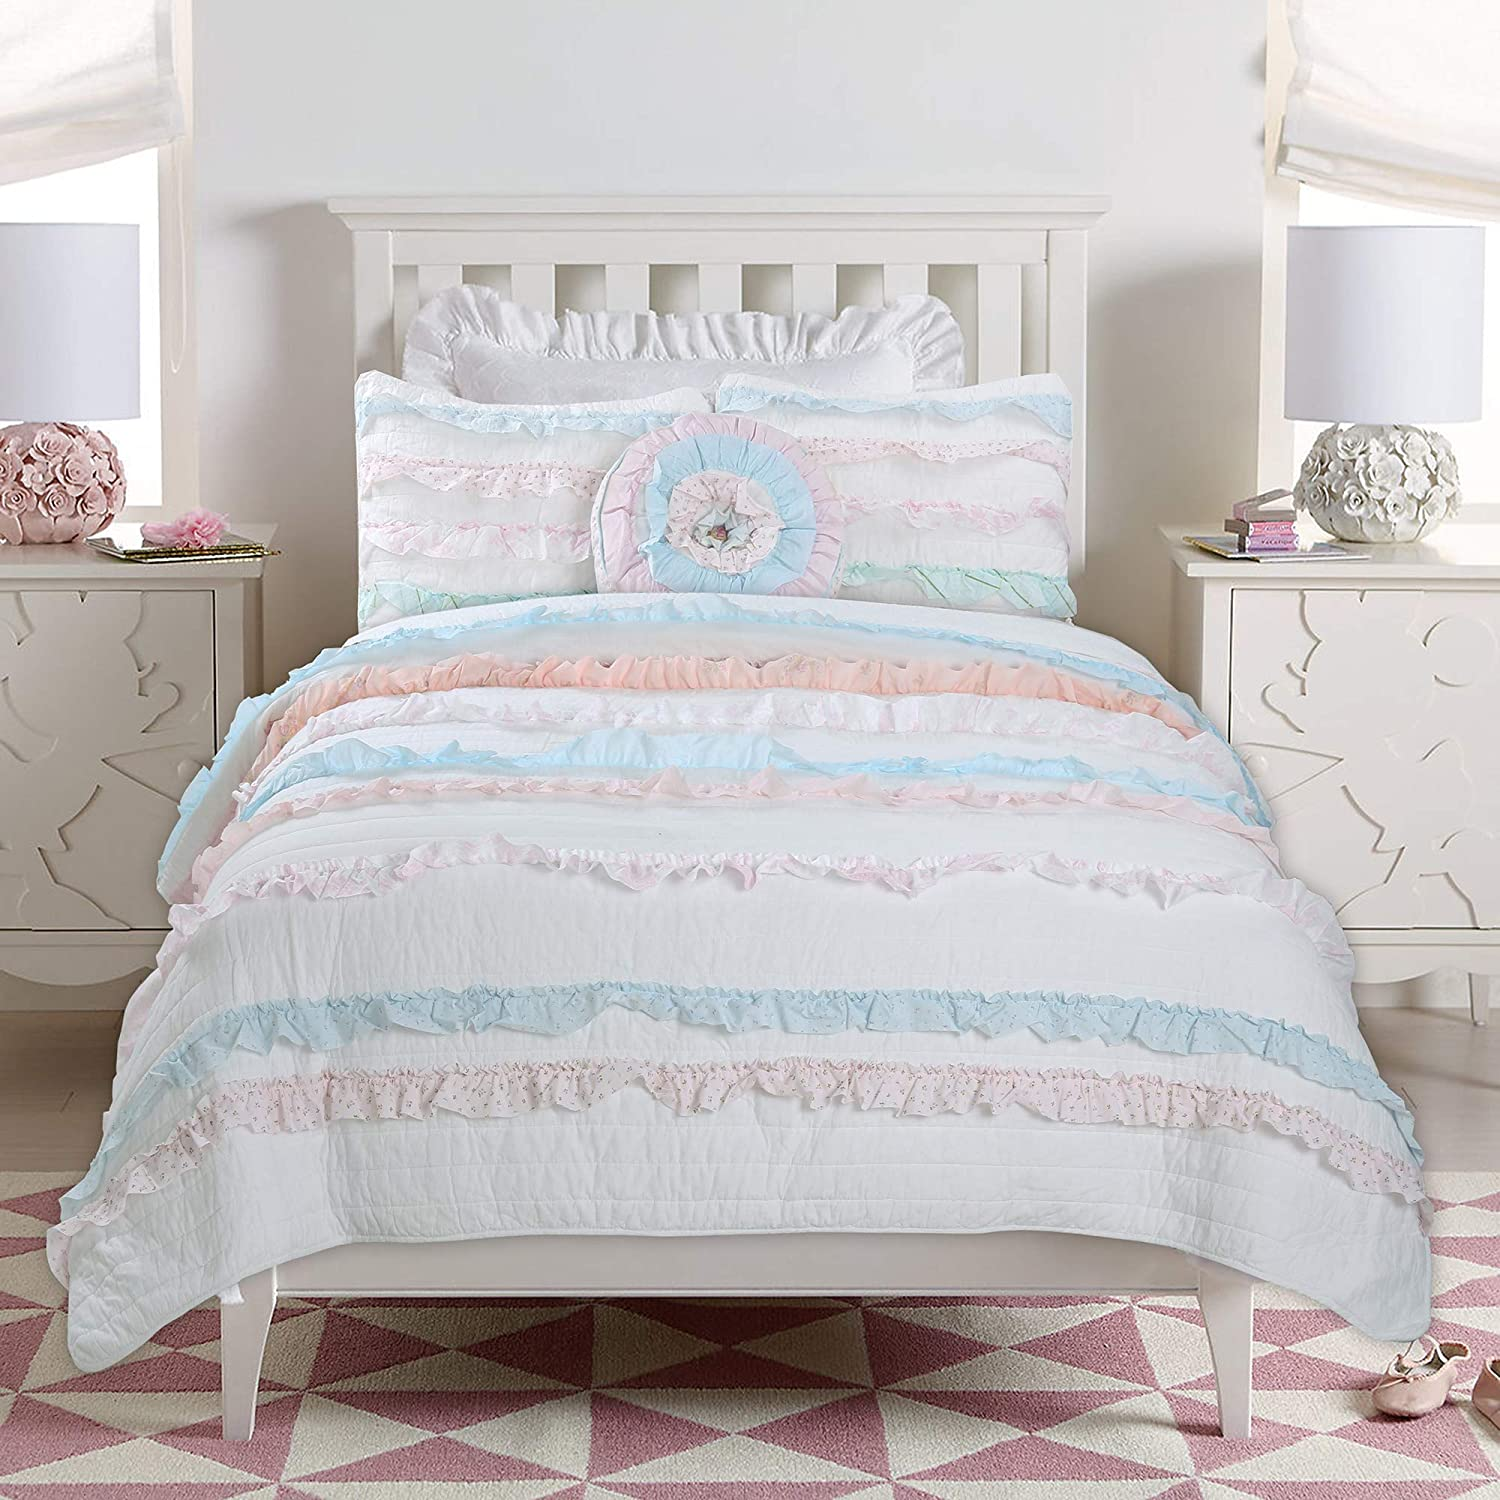 Cozy Line Home Fashions Emma Light Pink Blue Coral Girly Romantic Lace Bold Striped Ruffle Quilt Bedding Set, 100% Cotton Reversible Coverlet Bedspread Set (Pink/Blue, Twin - 2 Piece)